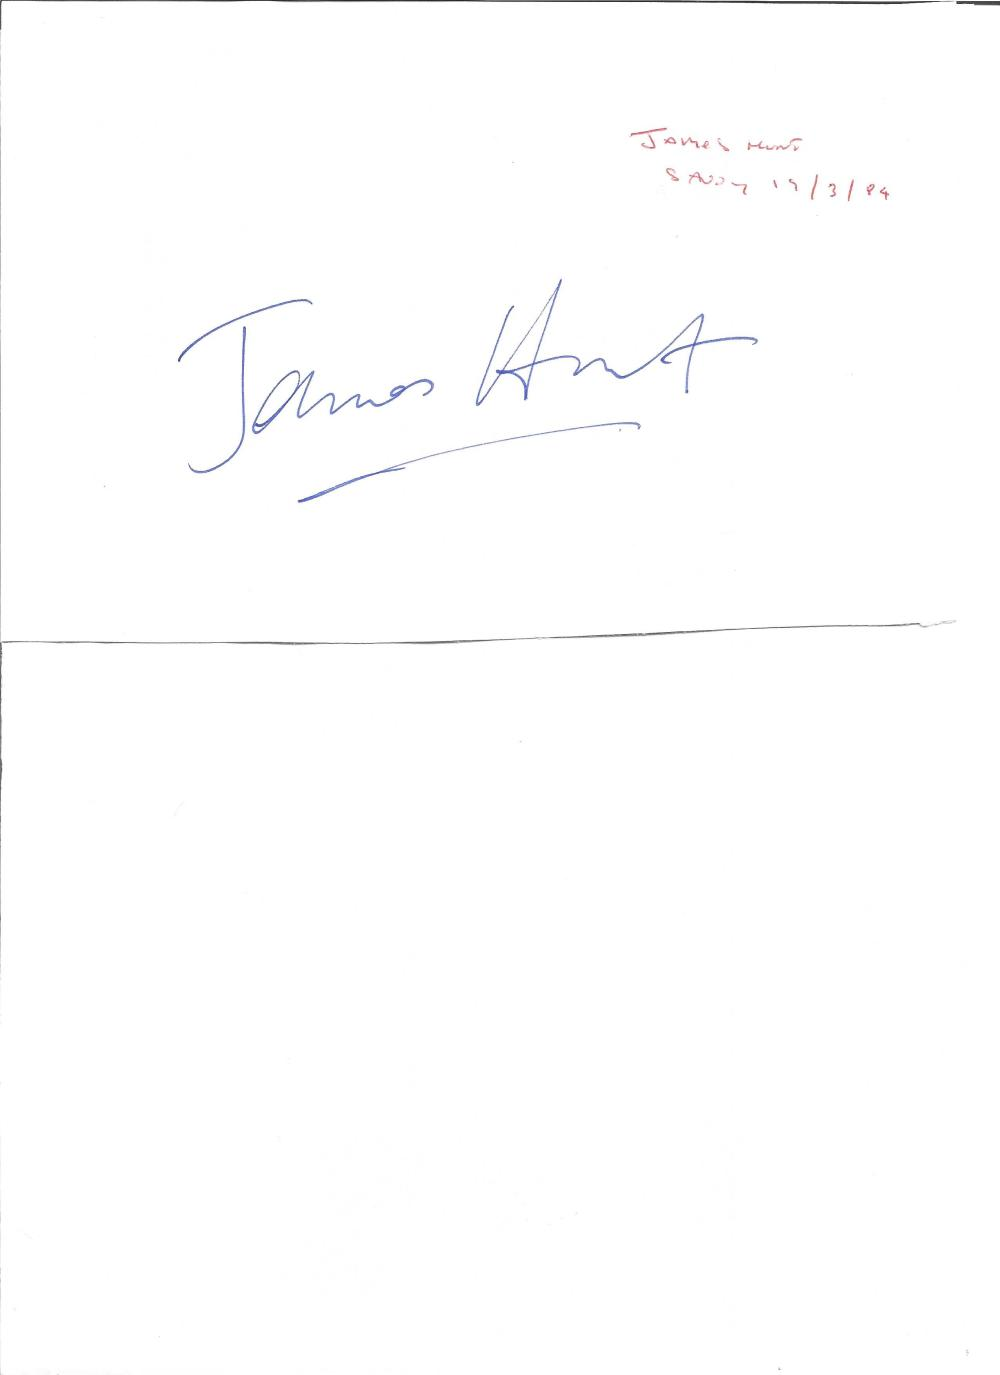 James Hunt large signature piece. English F1 driver. Good Condition. All signed pieces come with a